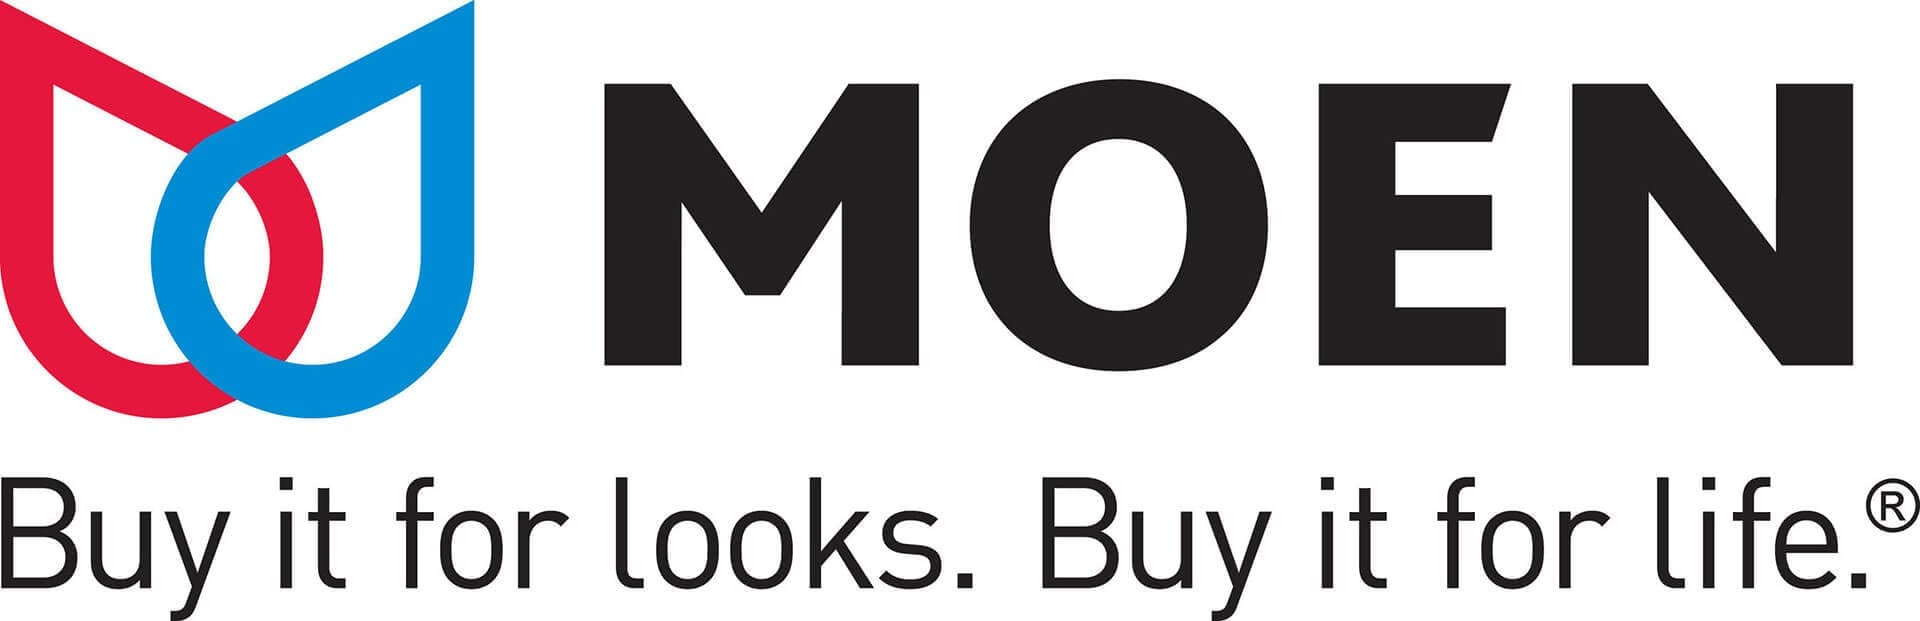 Moen logo with tagline: buy it for looks, buy it for life